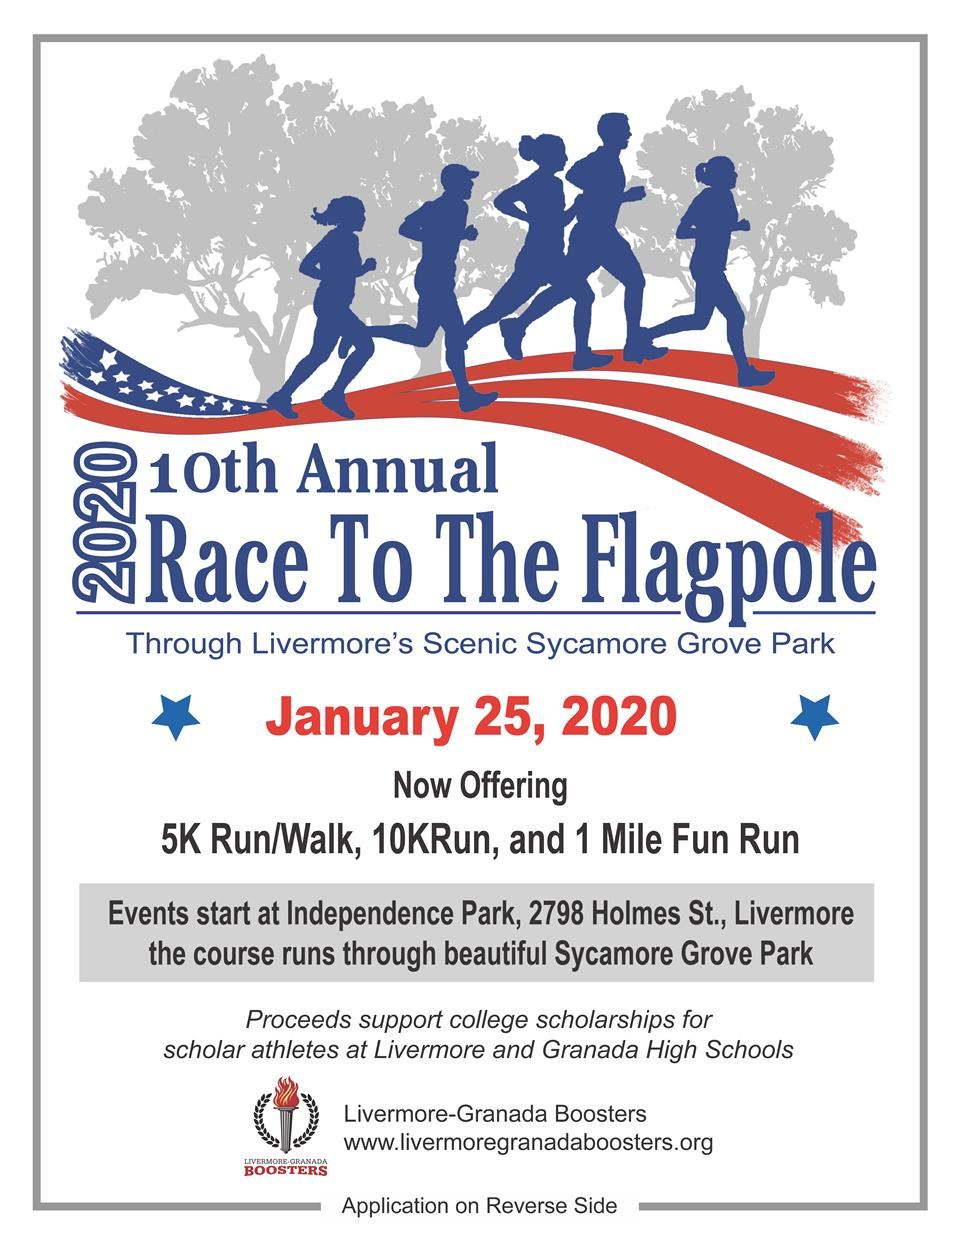 Race to the Flagpole 2020 Flyer